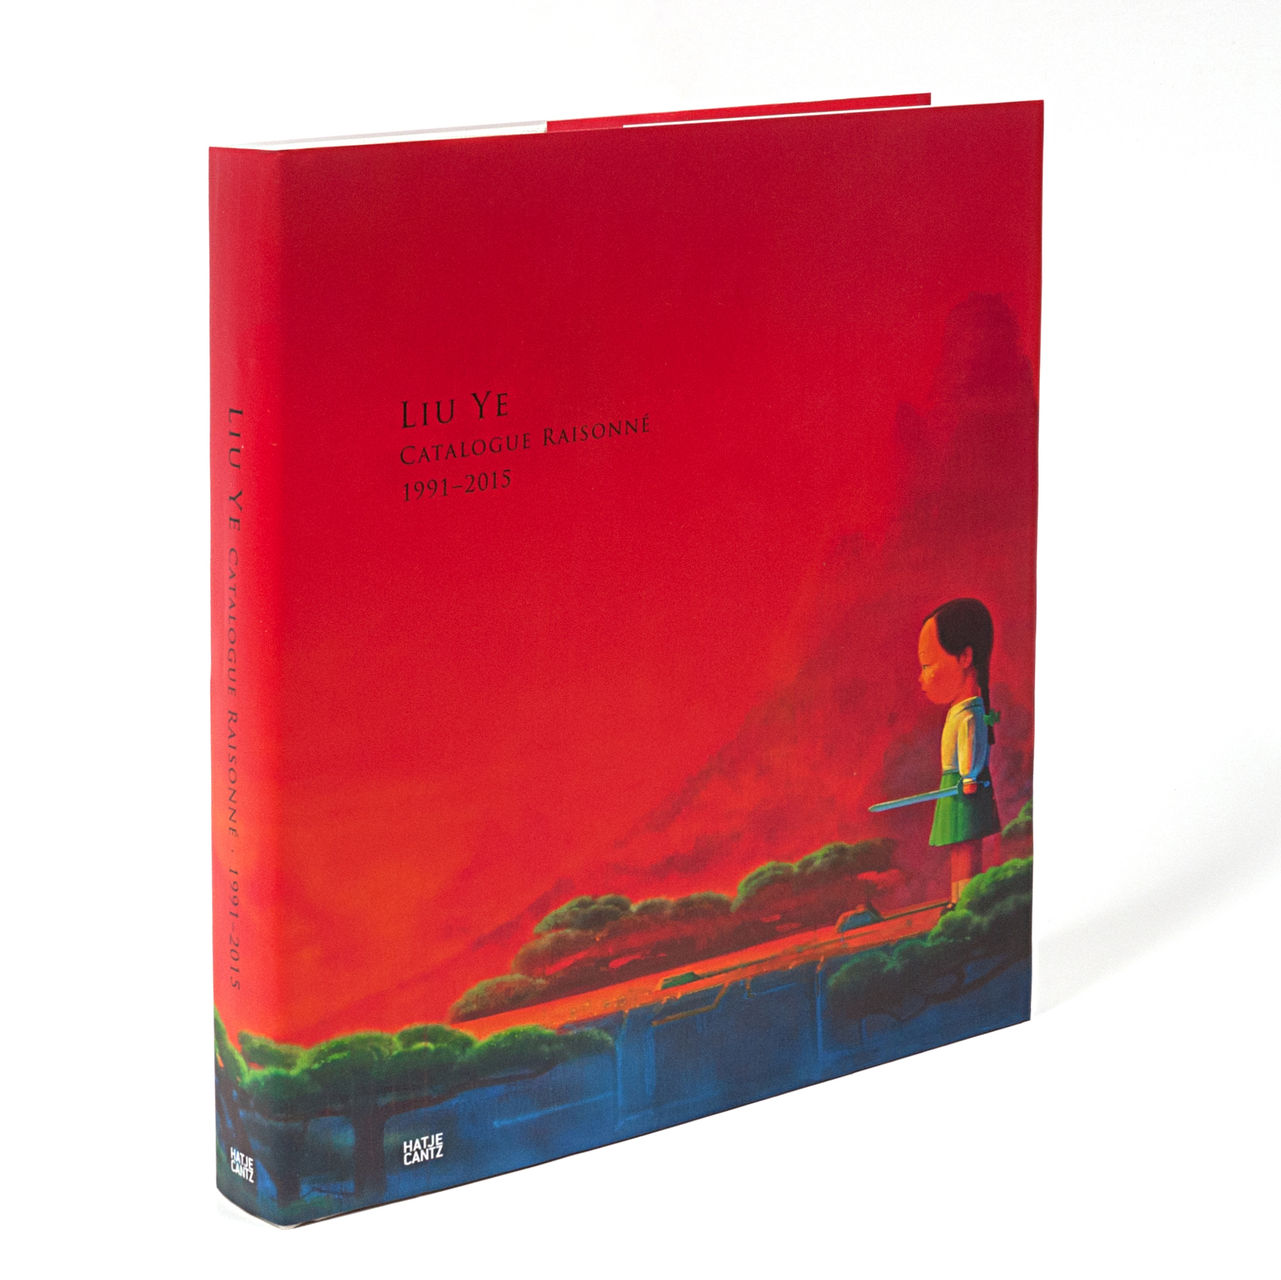 Competition: Win A Copy Of Liu Ye's Catalogue Raisonné